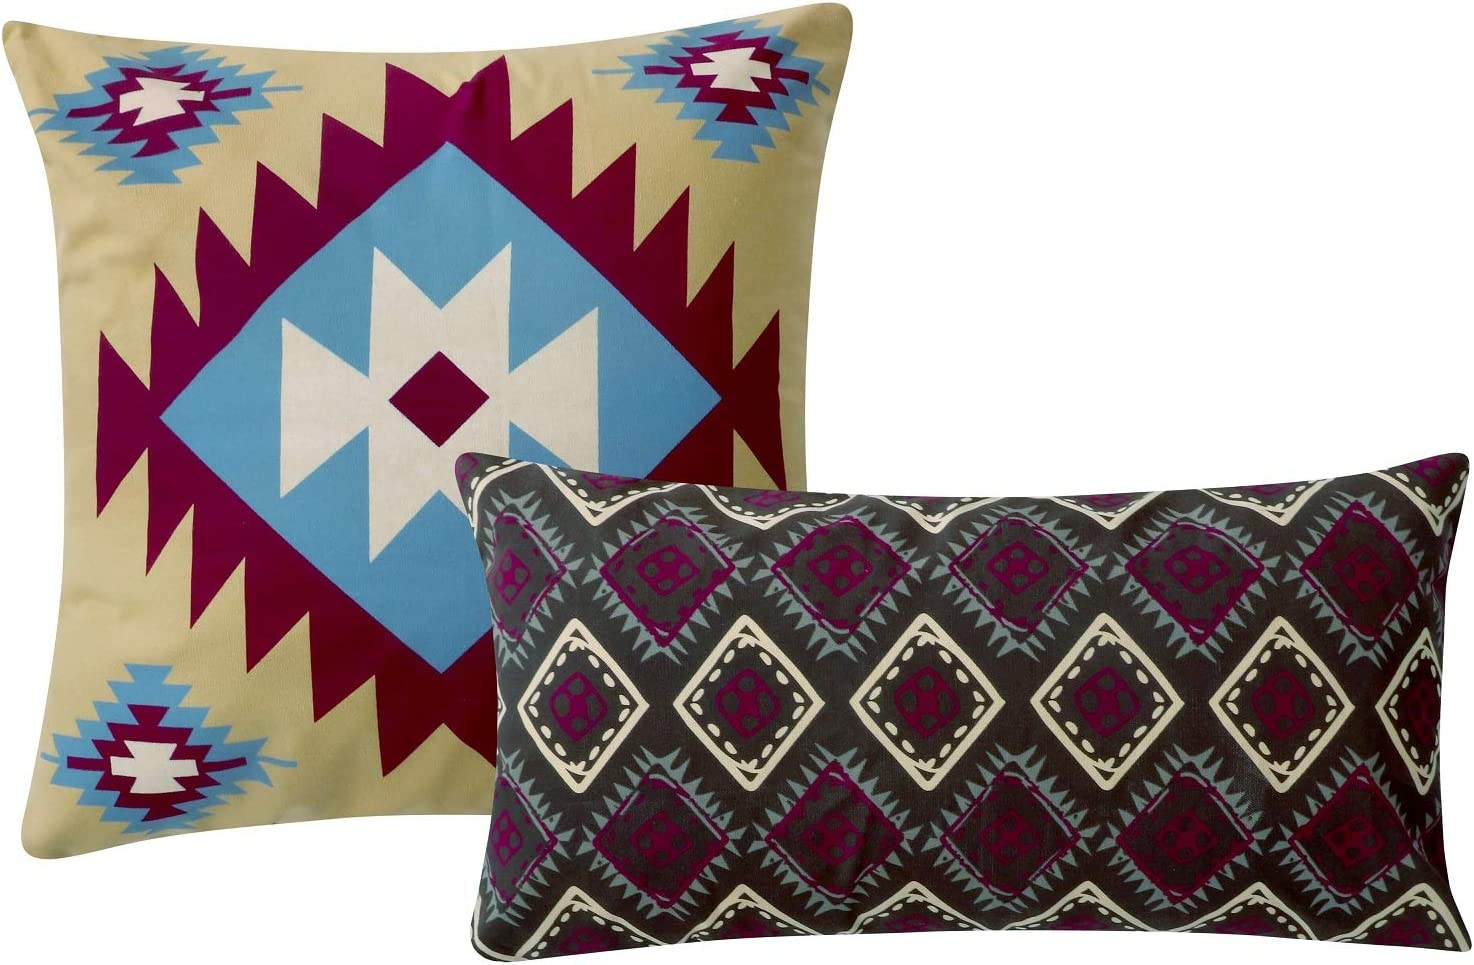 Greenland Home Southwest Pillow Set, 2 Piece, 18x18 inches Plus 12x24 inches, Earth Tones